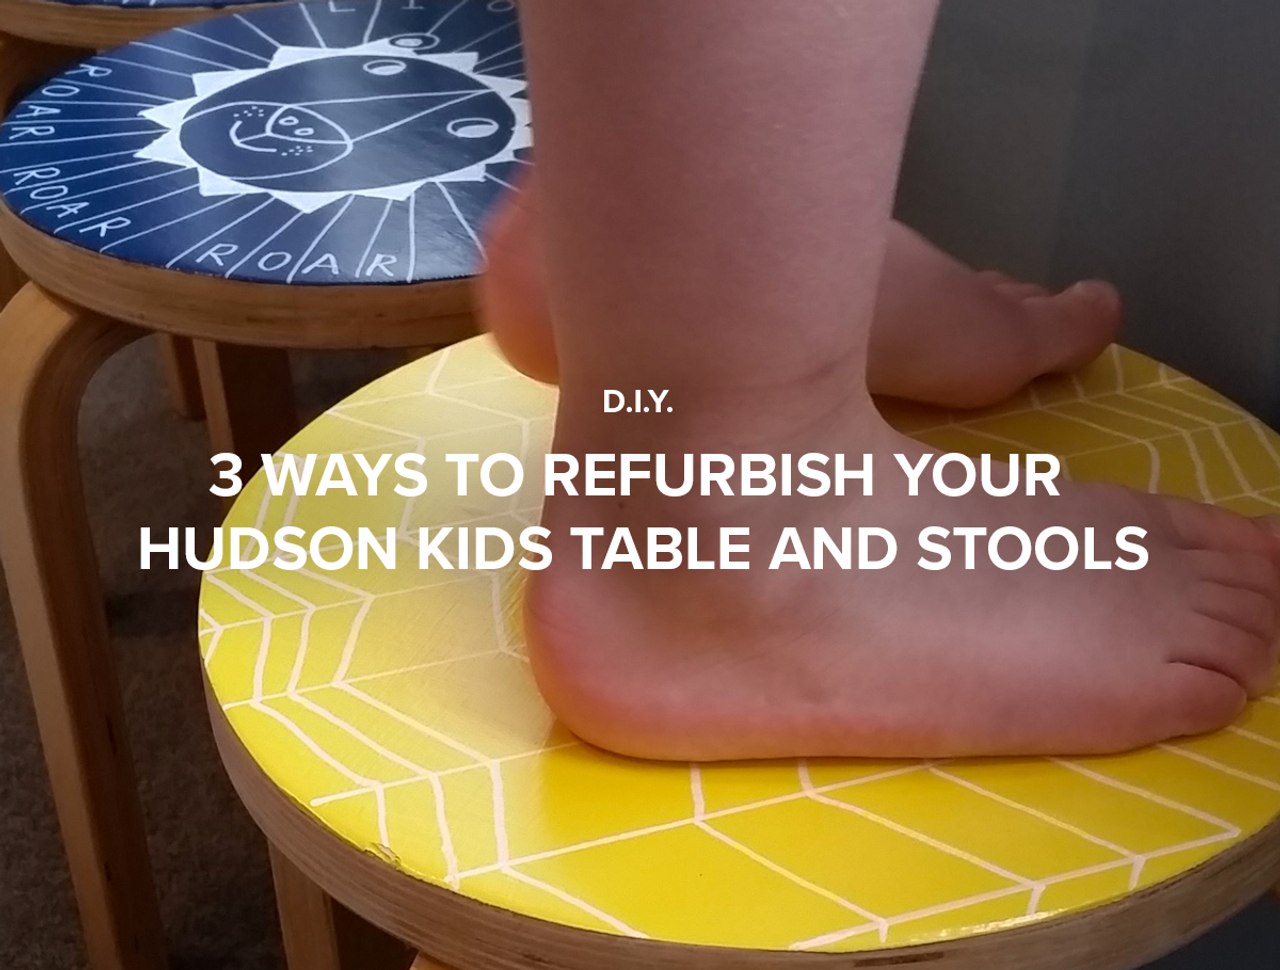 3 Ways to Refurbish your Hudson Kids Table and Stools